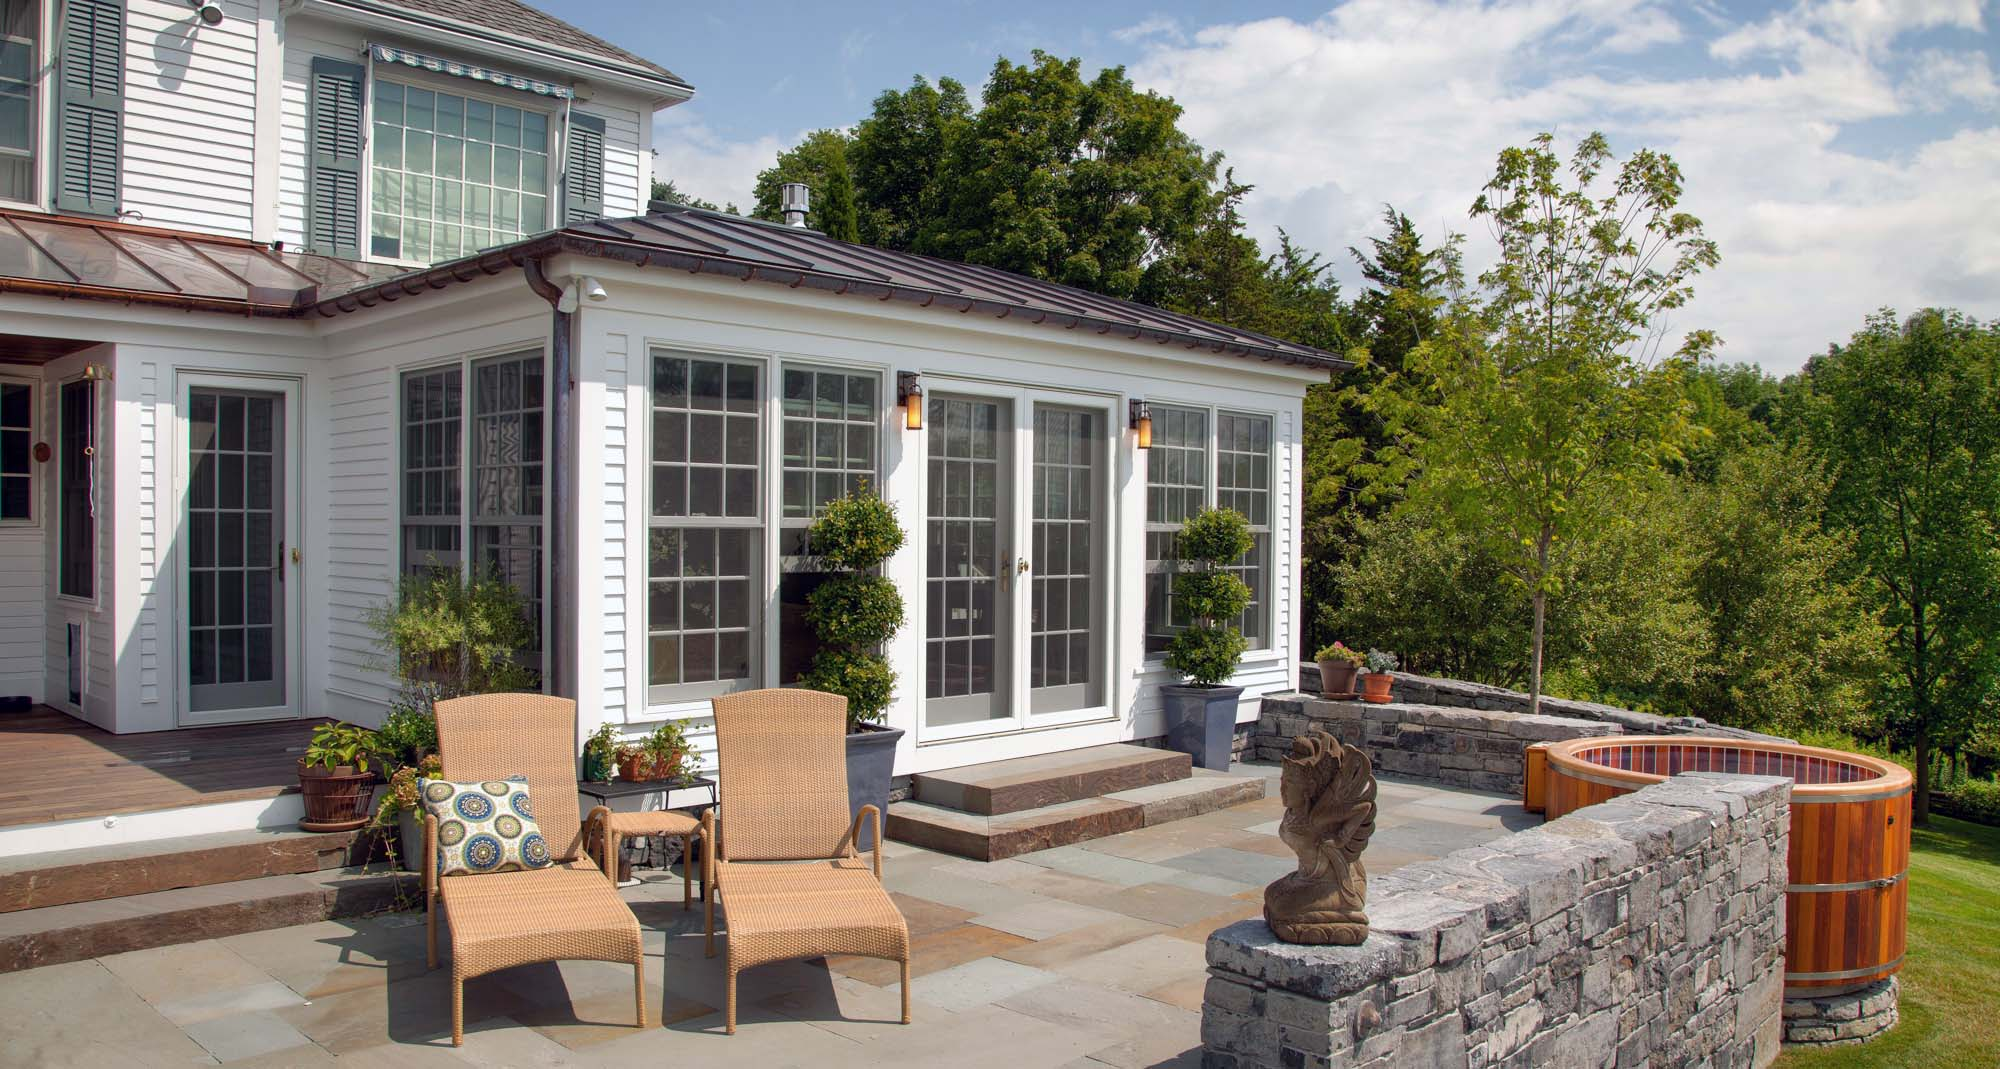 Top Local Long Branch NJ Sunroom Builder Exterior view beautiful sunroom and patio - Gambrick